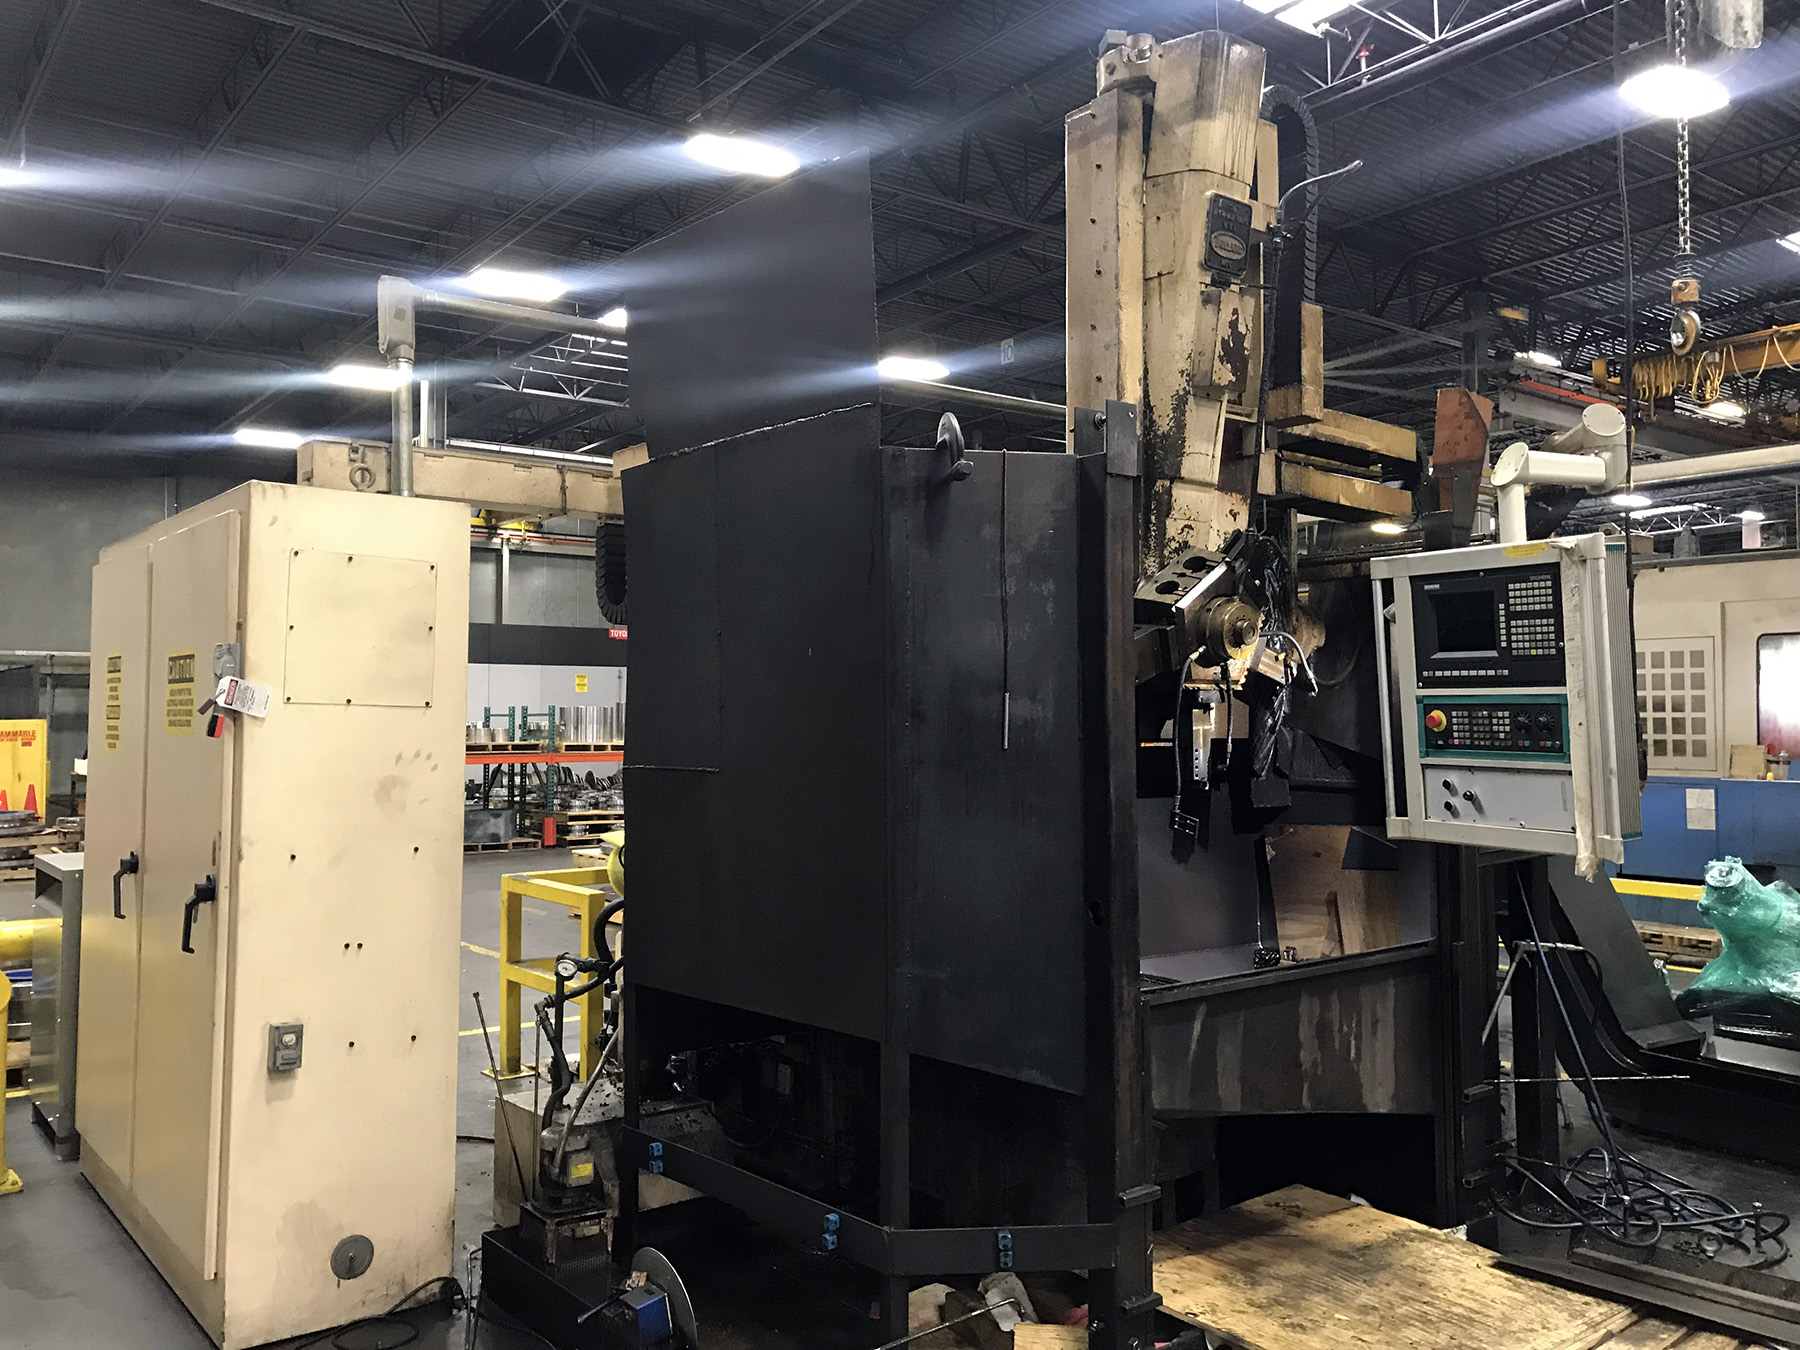 "USED, 36"" BULLARD DYN-AU-TAPE CNC VERTICAL BORING MILL"